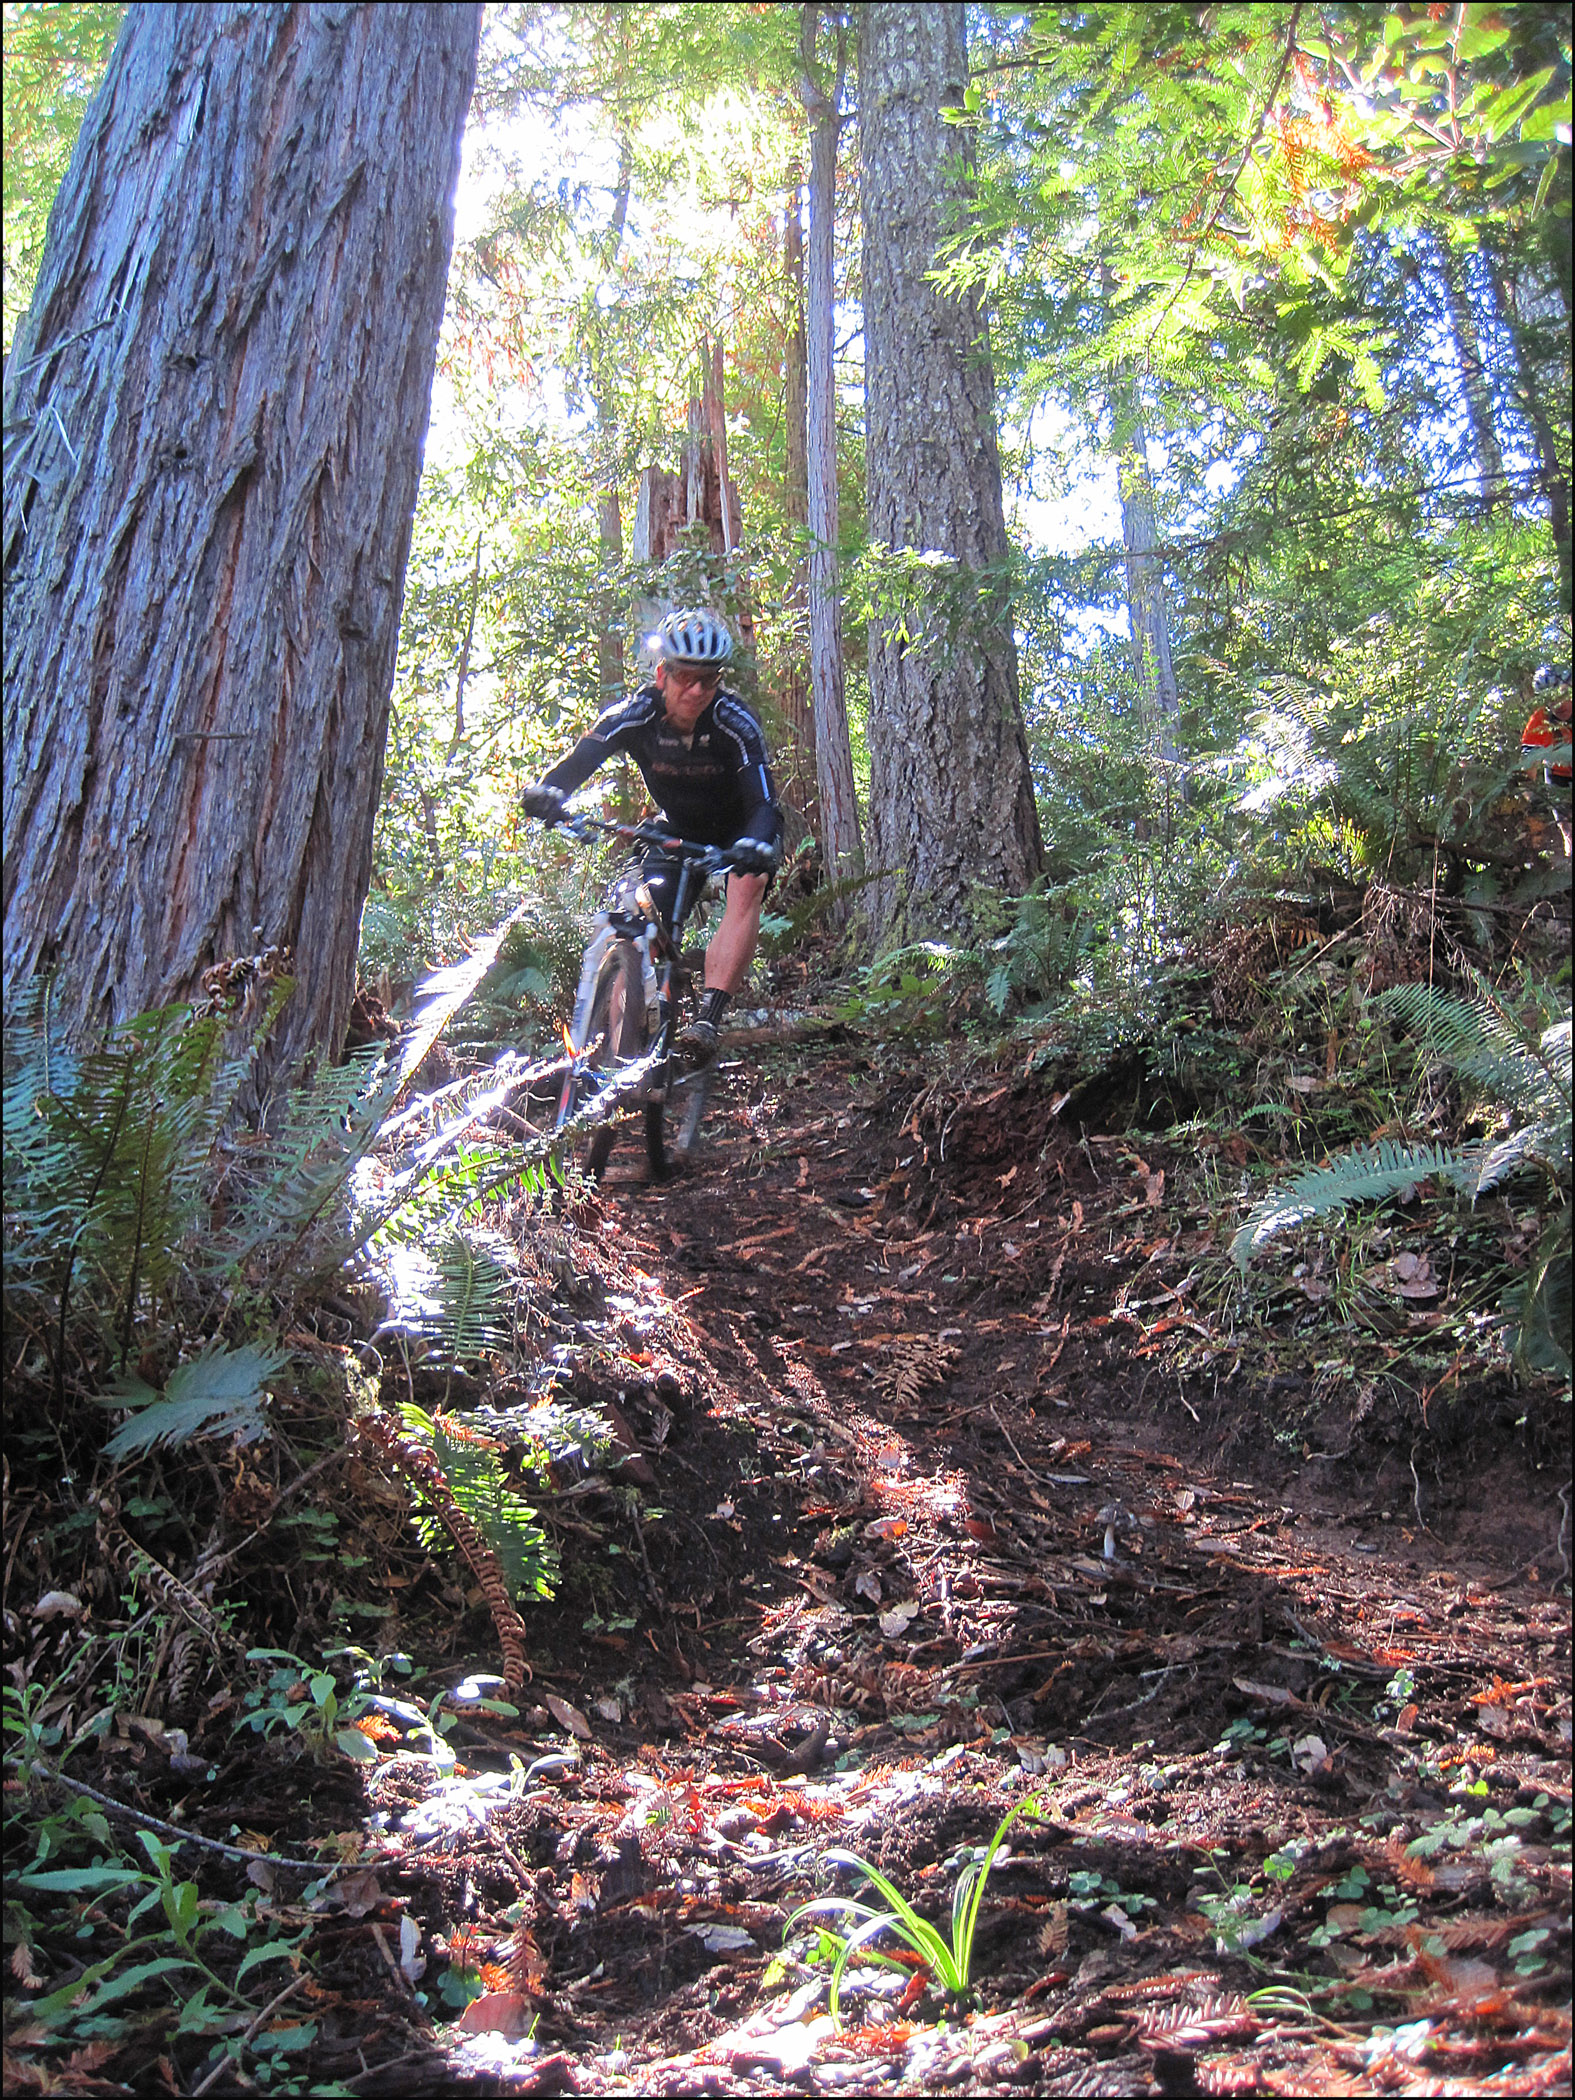 Singletrack mountain biking in Jackson State Forest. Photo by Roo Harris